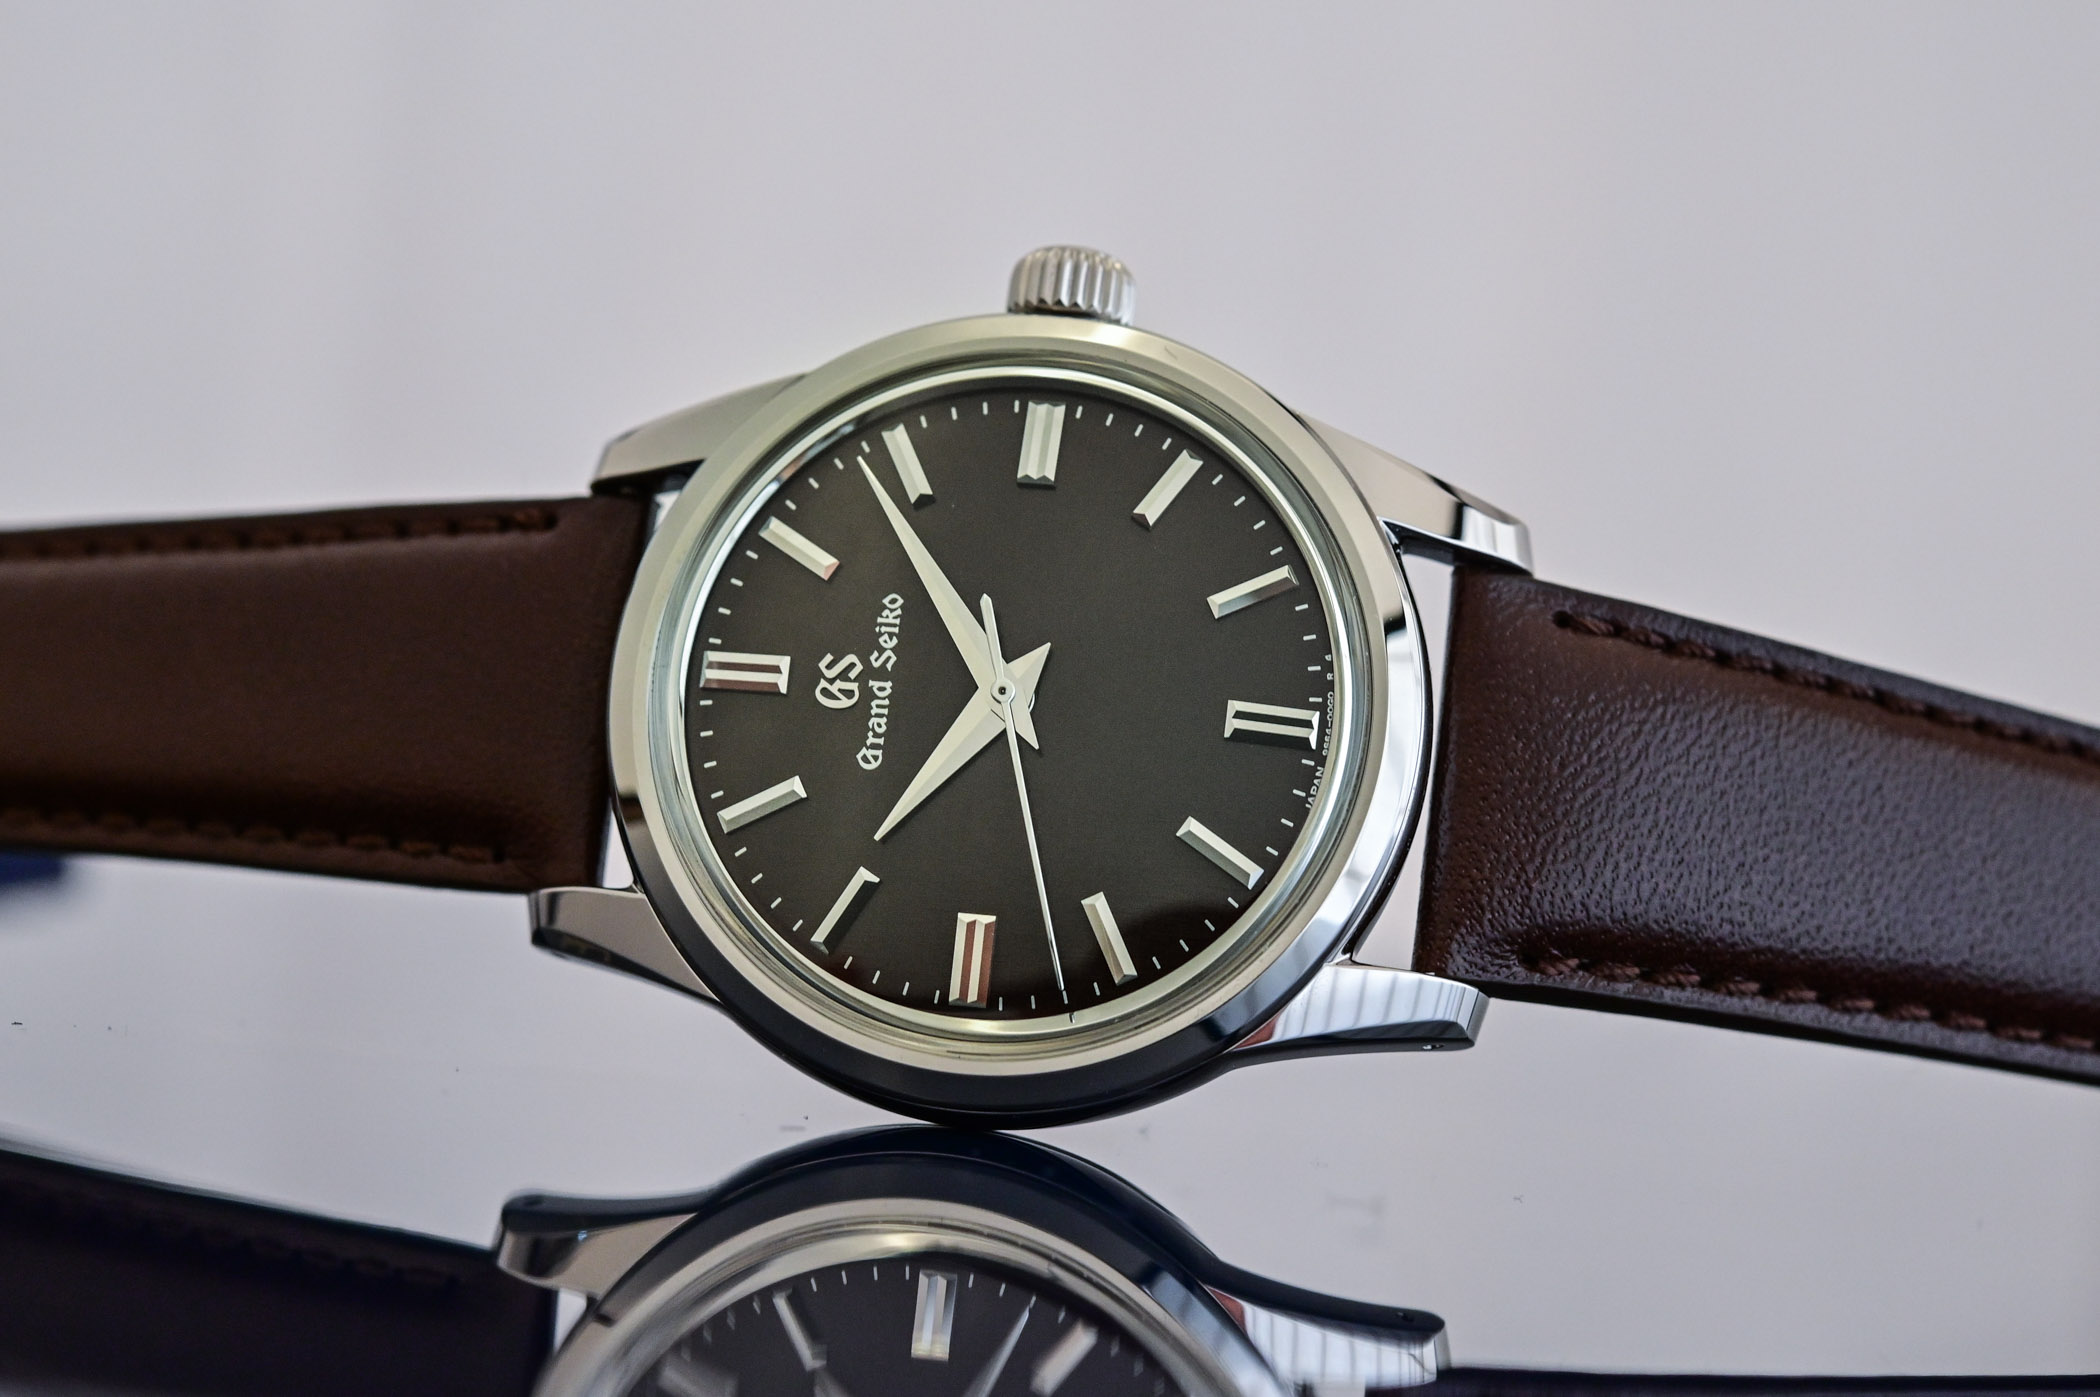 Grand-Seiko-Elegance-Collection-European-Edition-SBGW267-SBGW269-hands-on-review-5.jpg